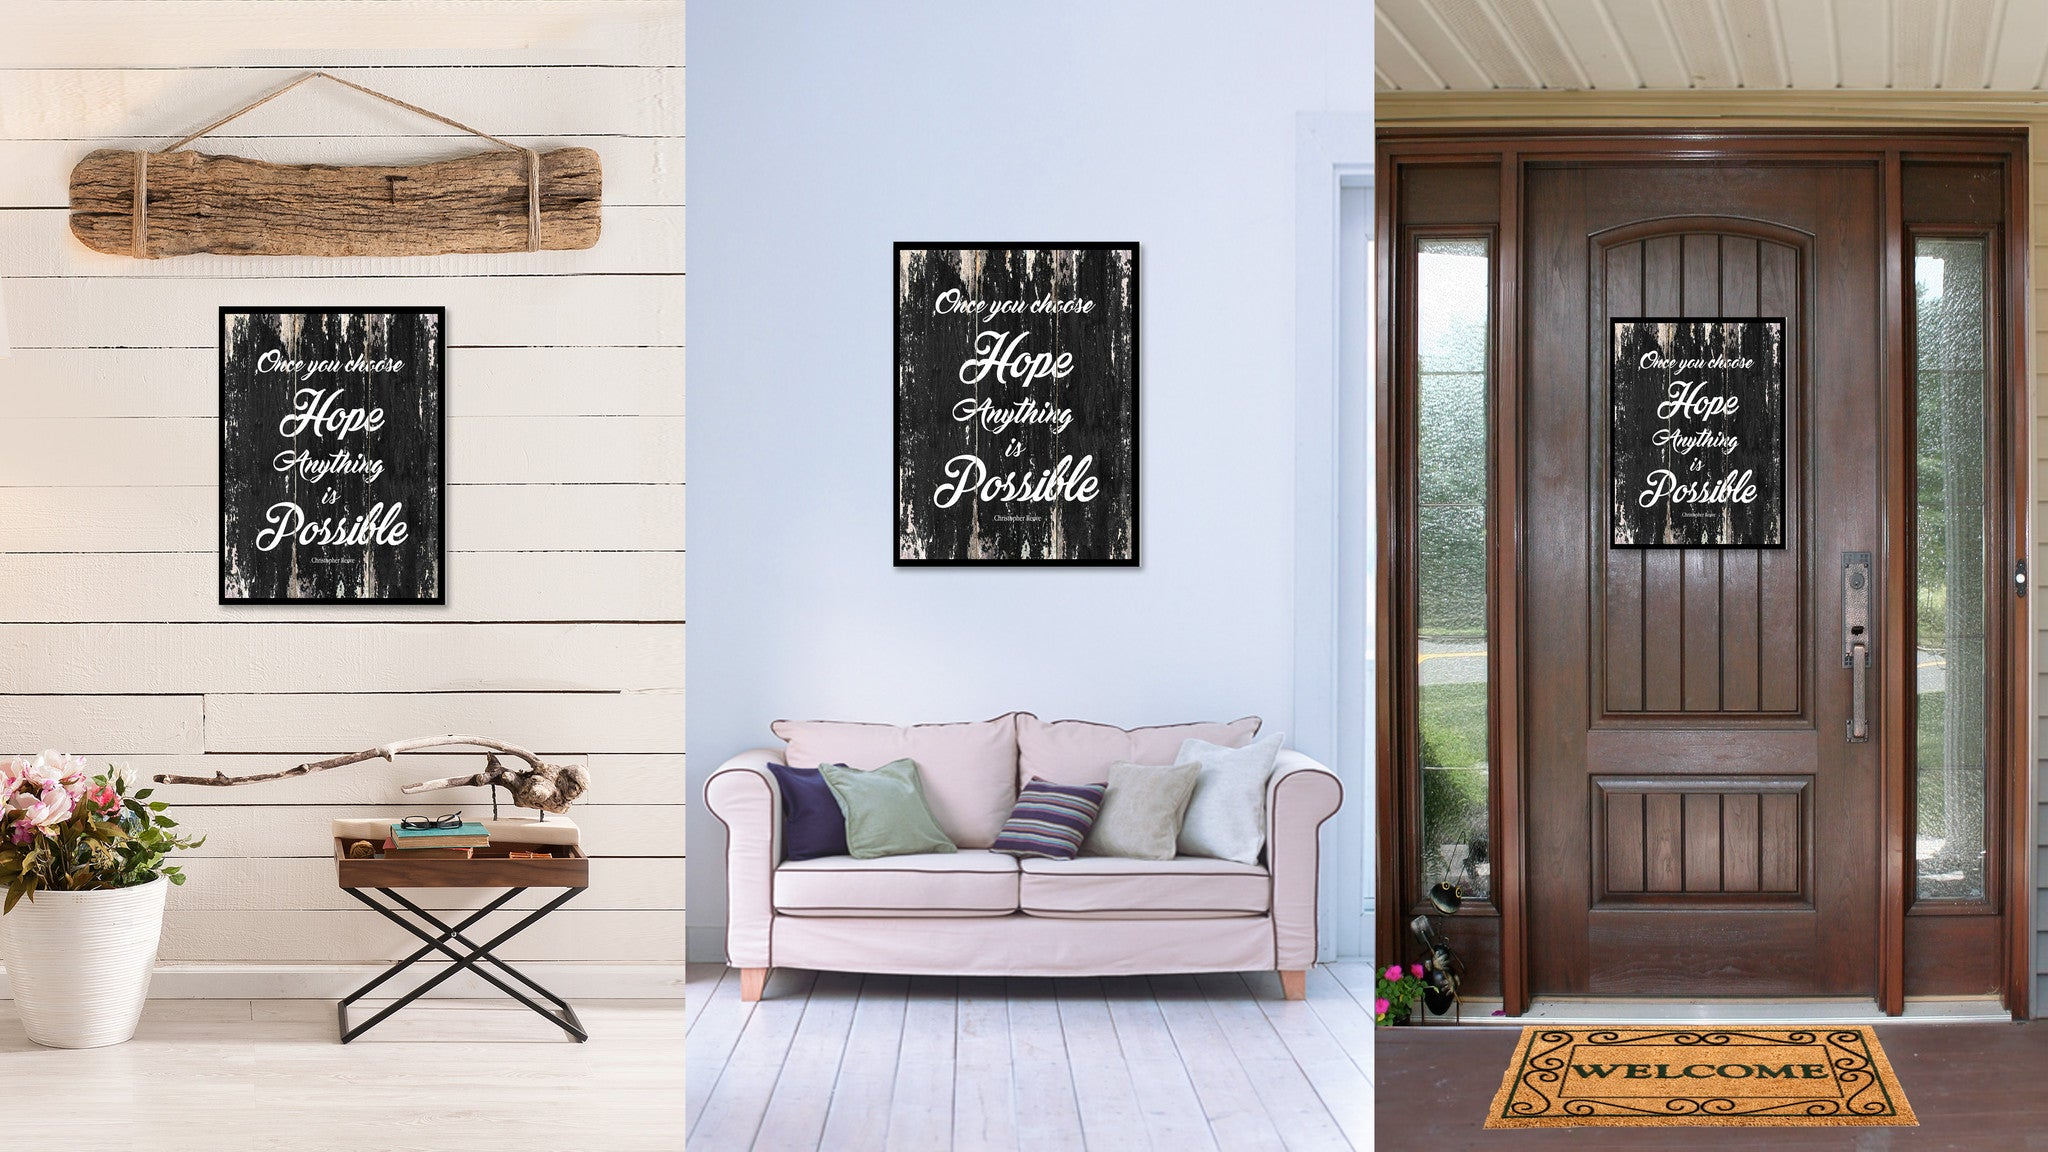 Once you choose hope anything is possible Motivational Quote Saying Canvas Print with Picture Frame Home Decor Wall Art